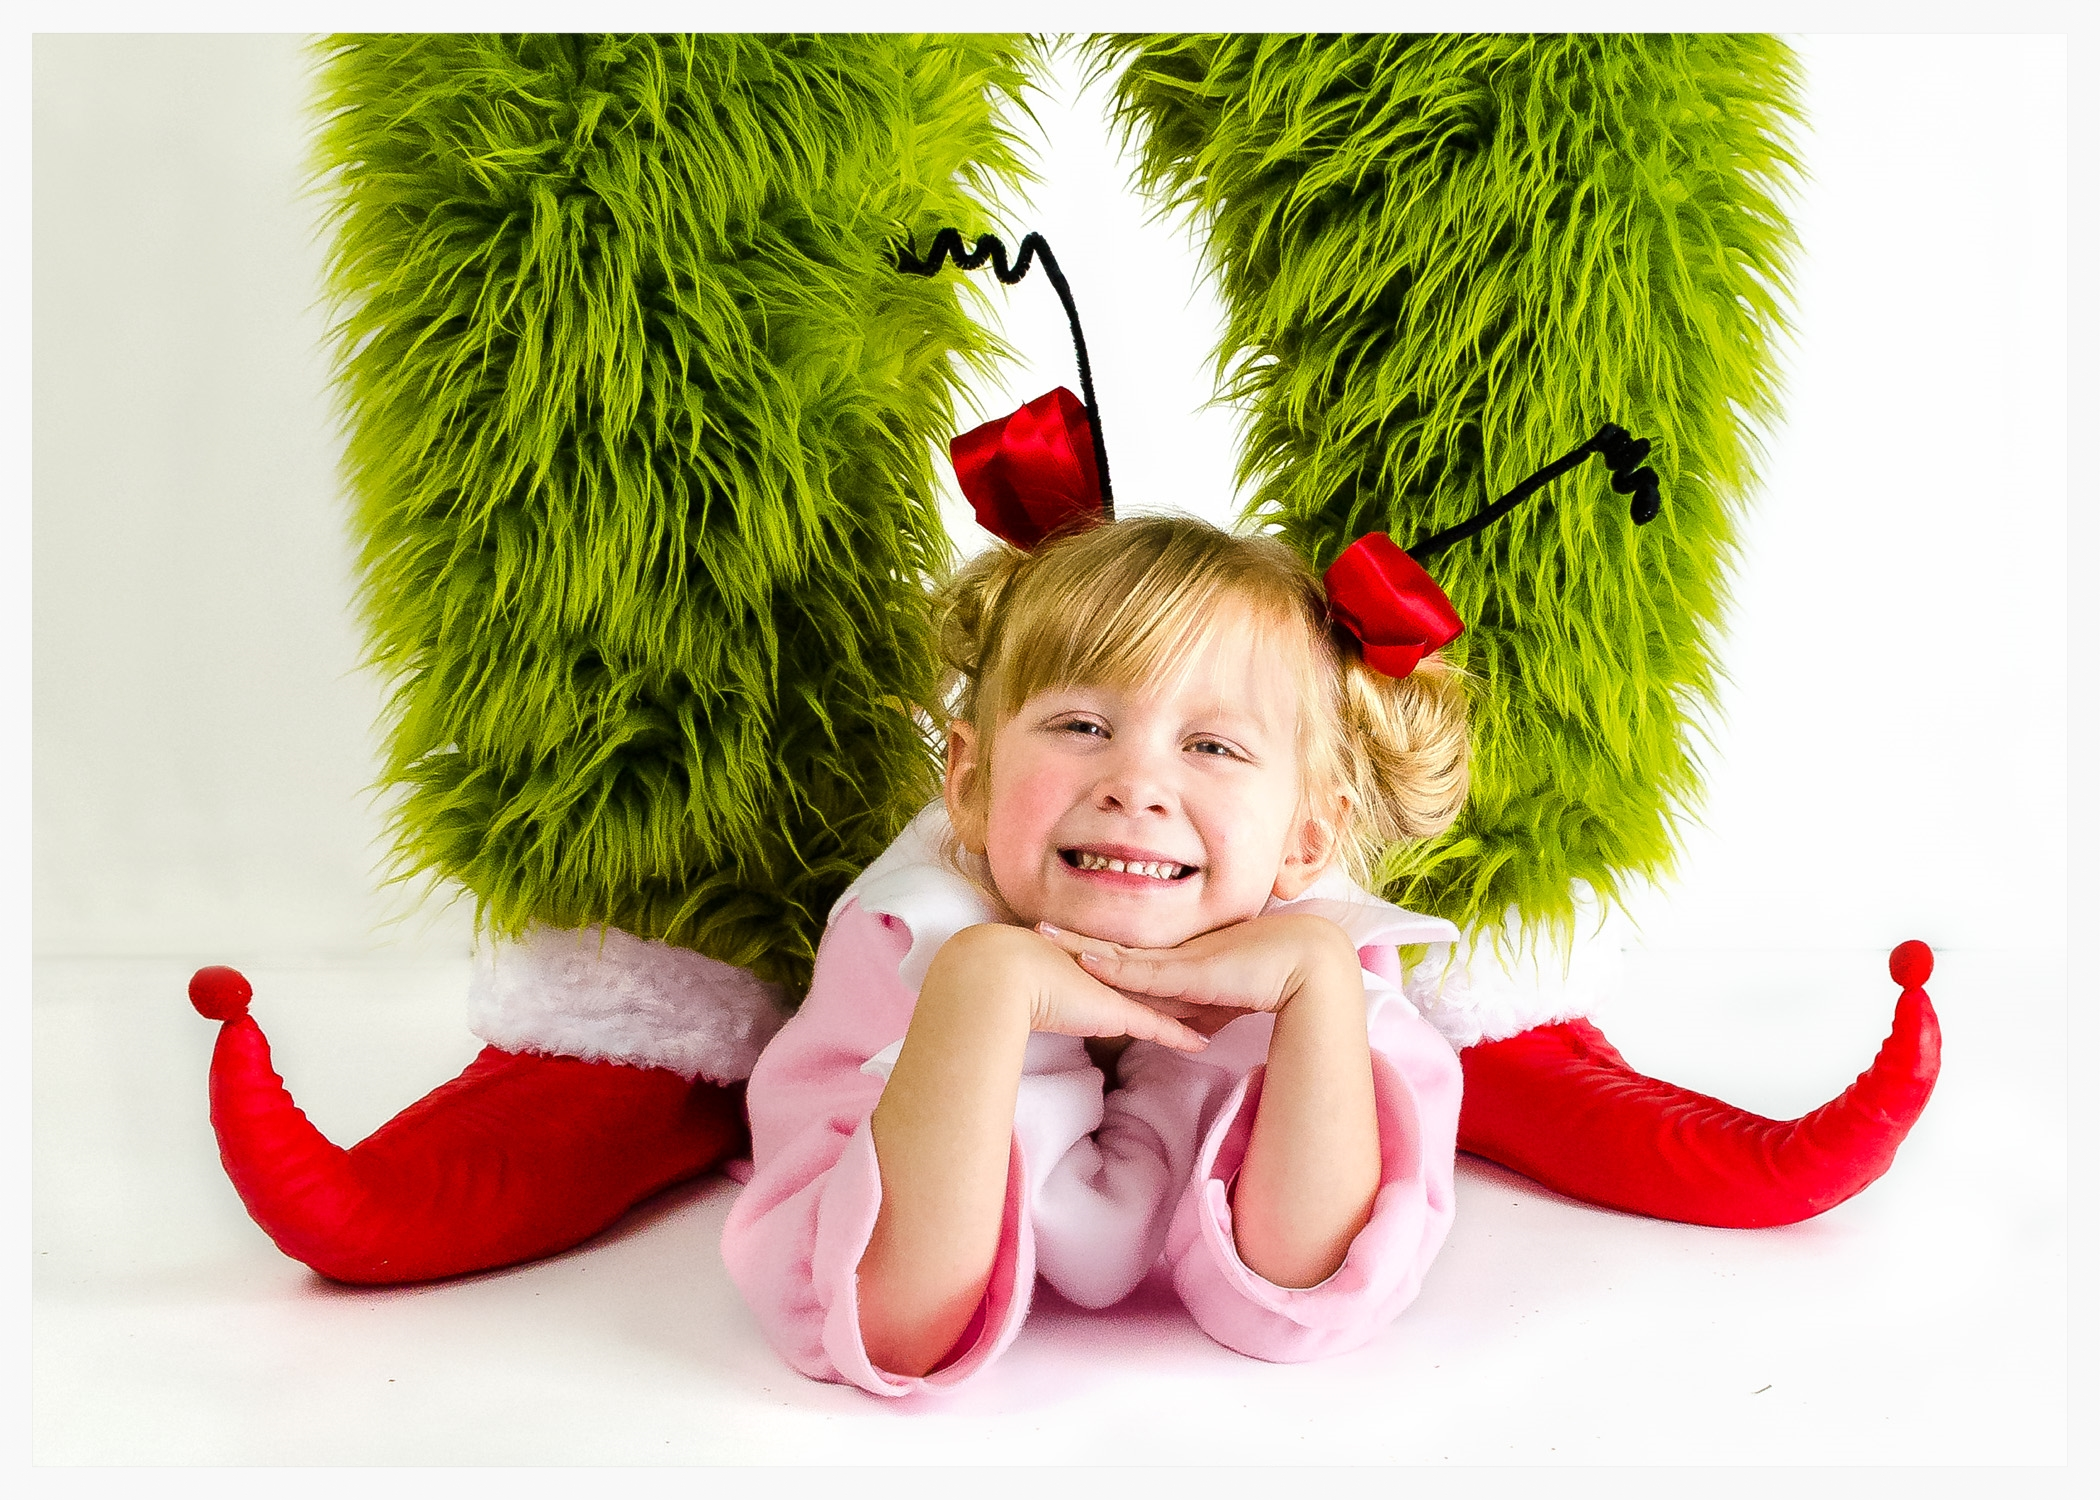 CINDY LOU WHO AND HER PAL, THE GRINCH